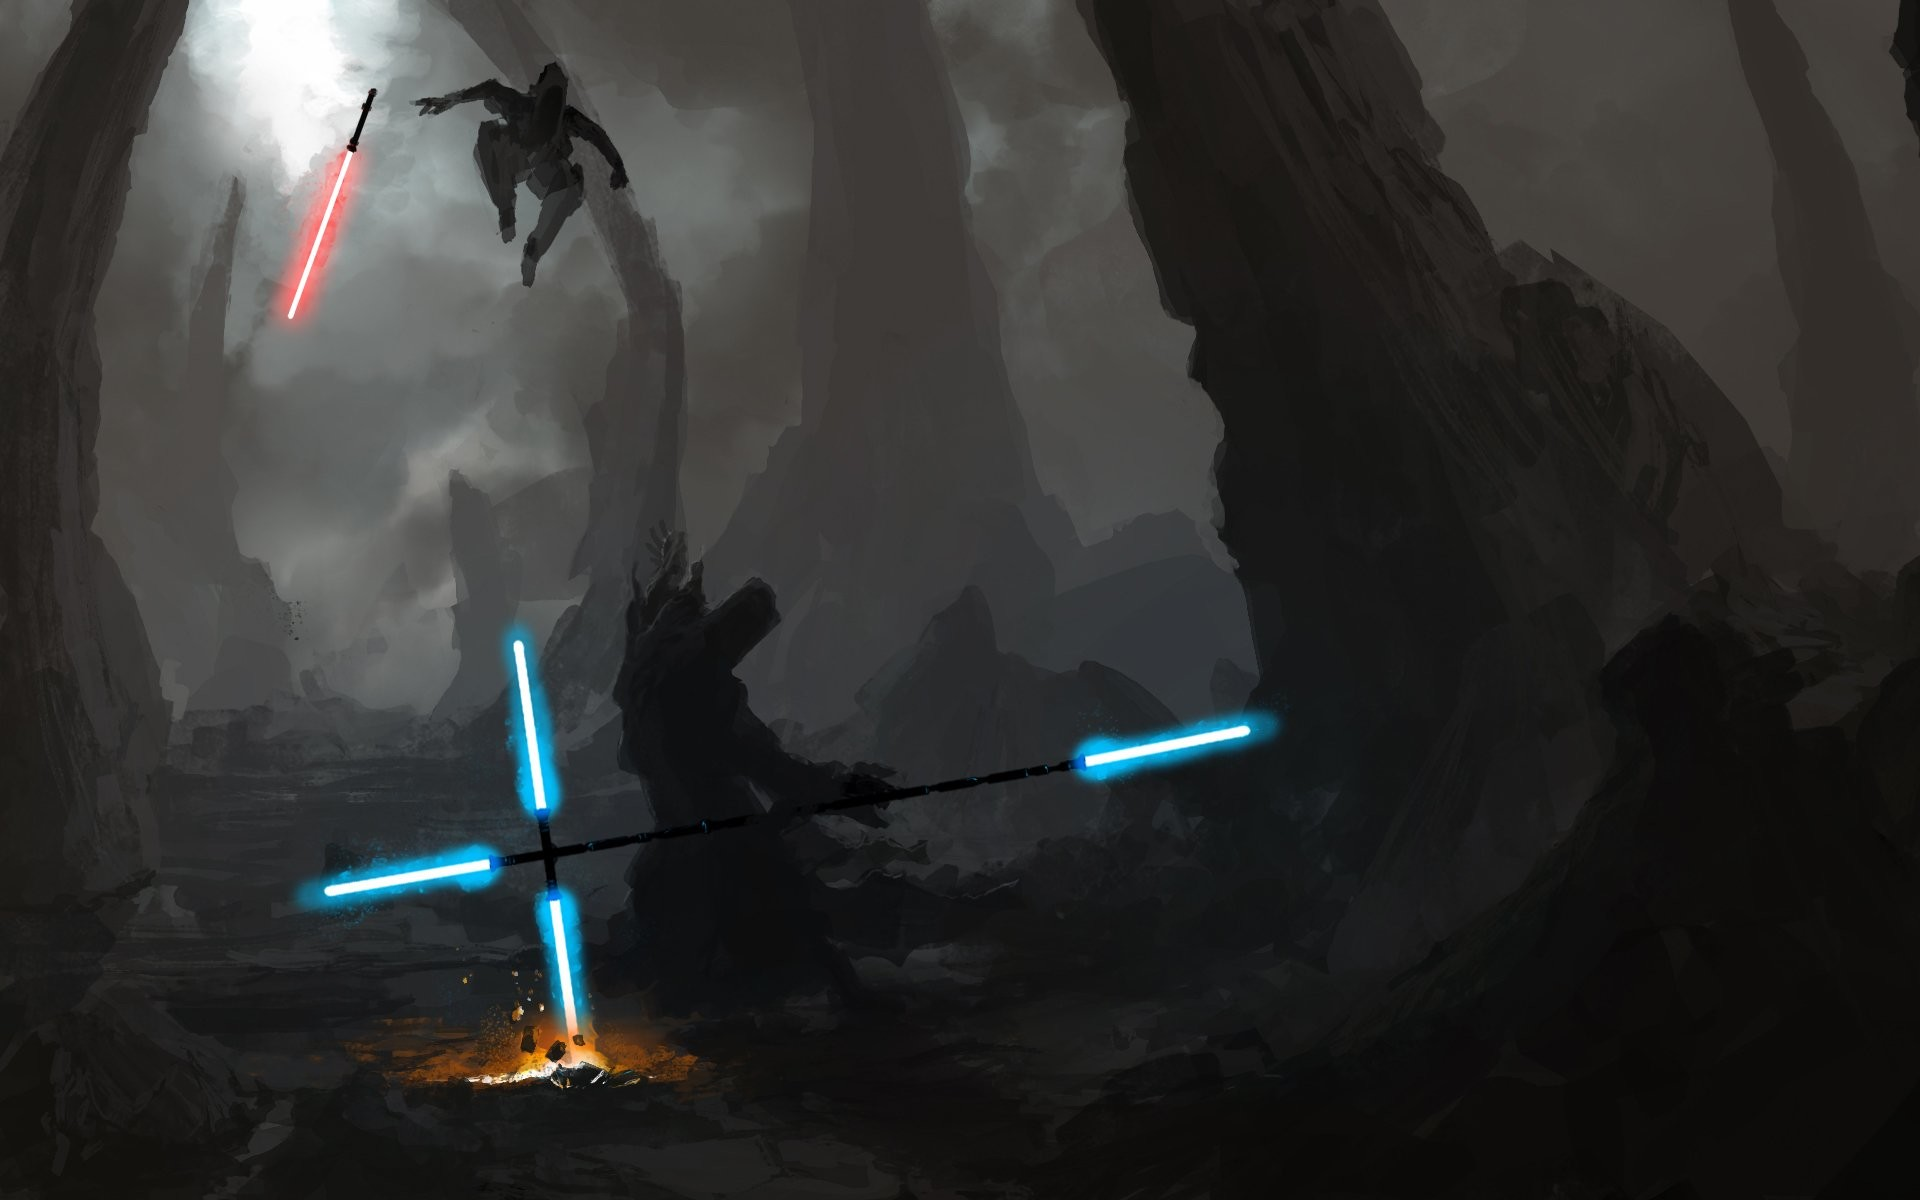 1920x1200 Artwork Duel Energy Jedi Lightsabers Sith Star Wars free iPhone or Android  Full HD wallpaper.